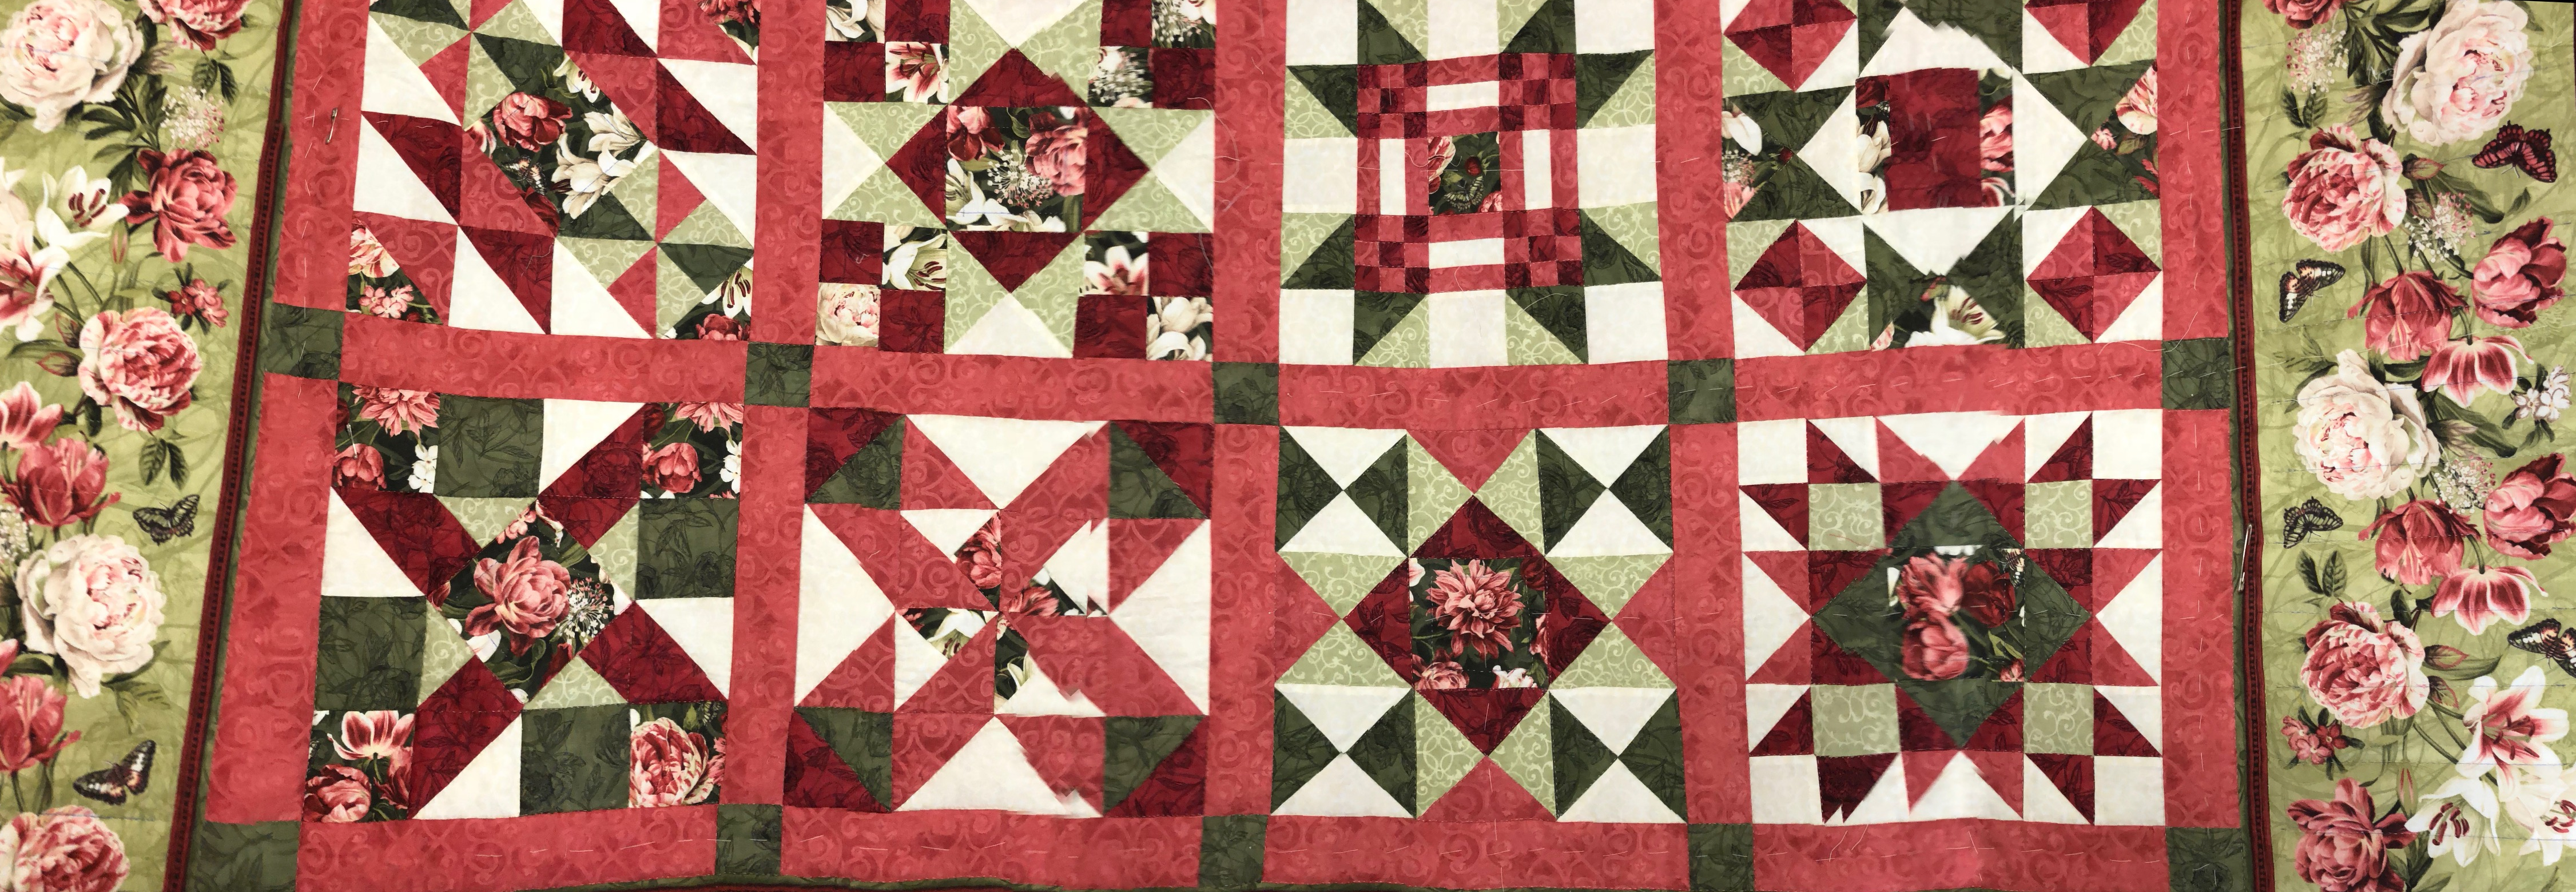 Homemakers Country Quilters